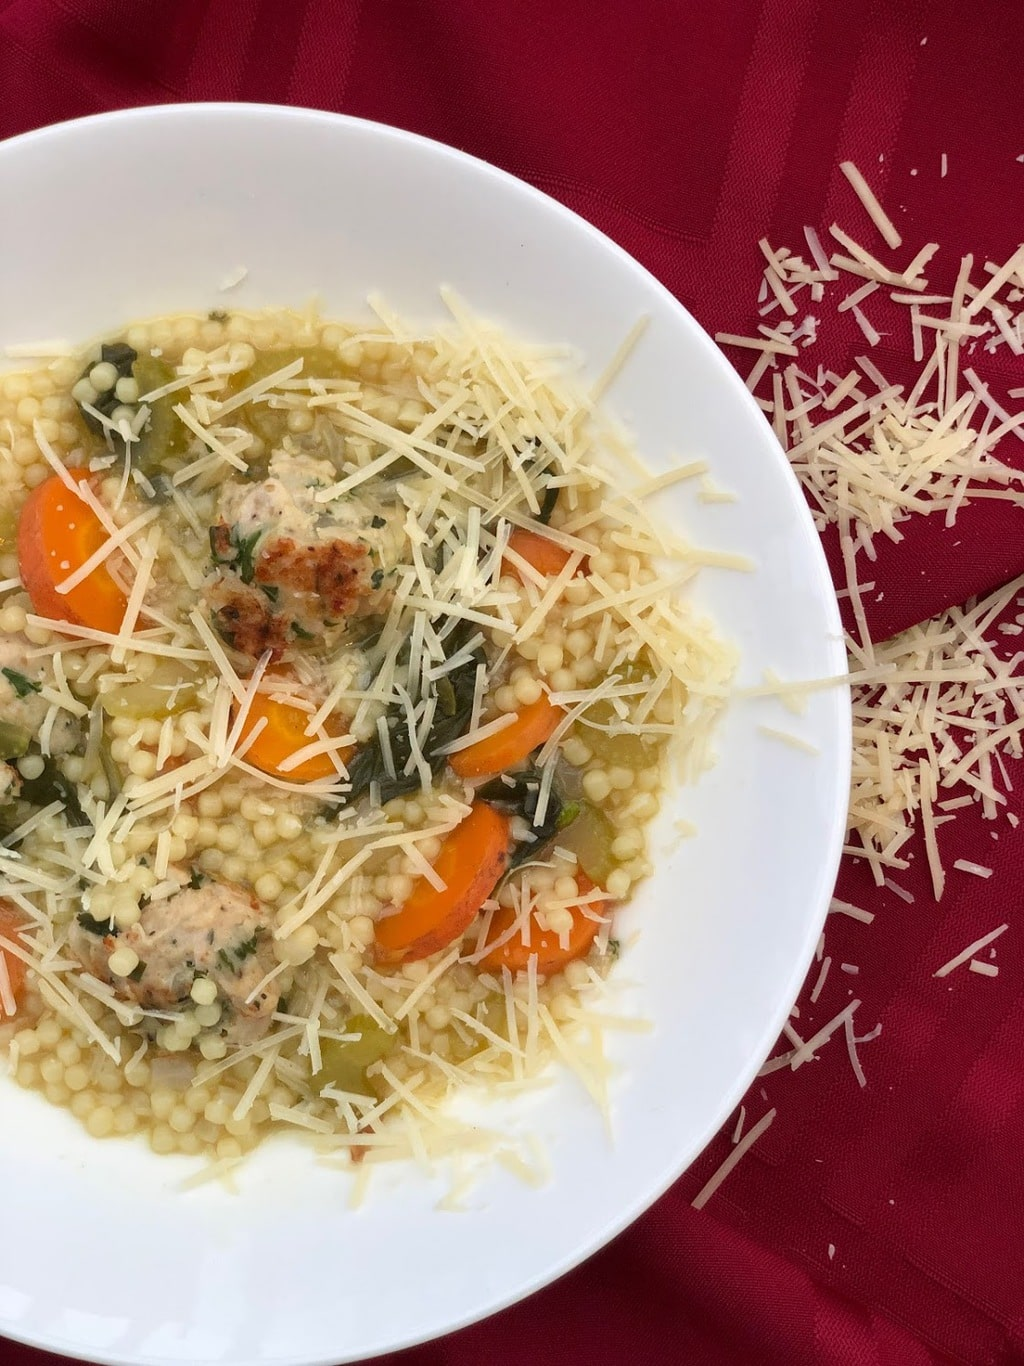 Italian wedding soup in bowl with shredded parmesan cheese